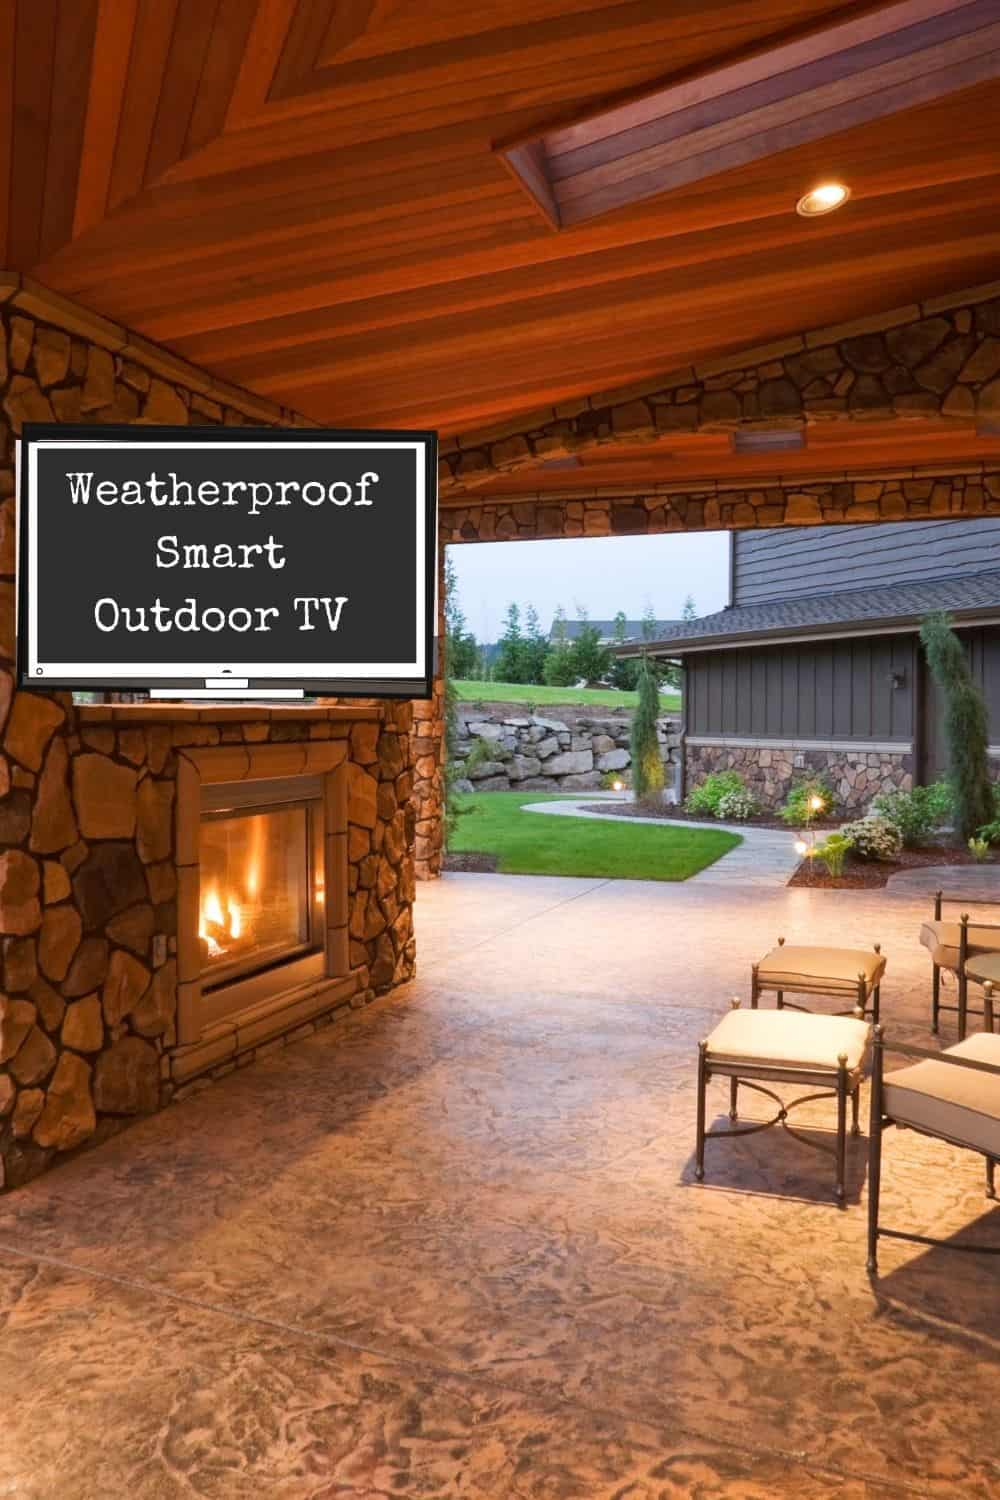 Pation outdoors covered with Weatherproof Smart Outdoor TV